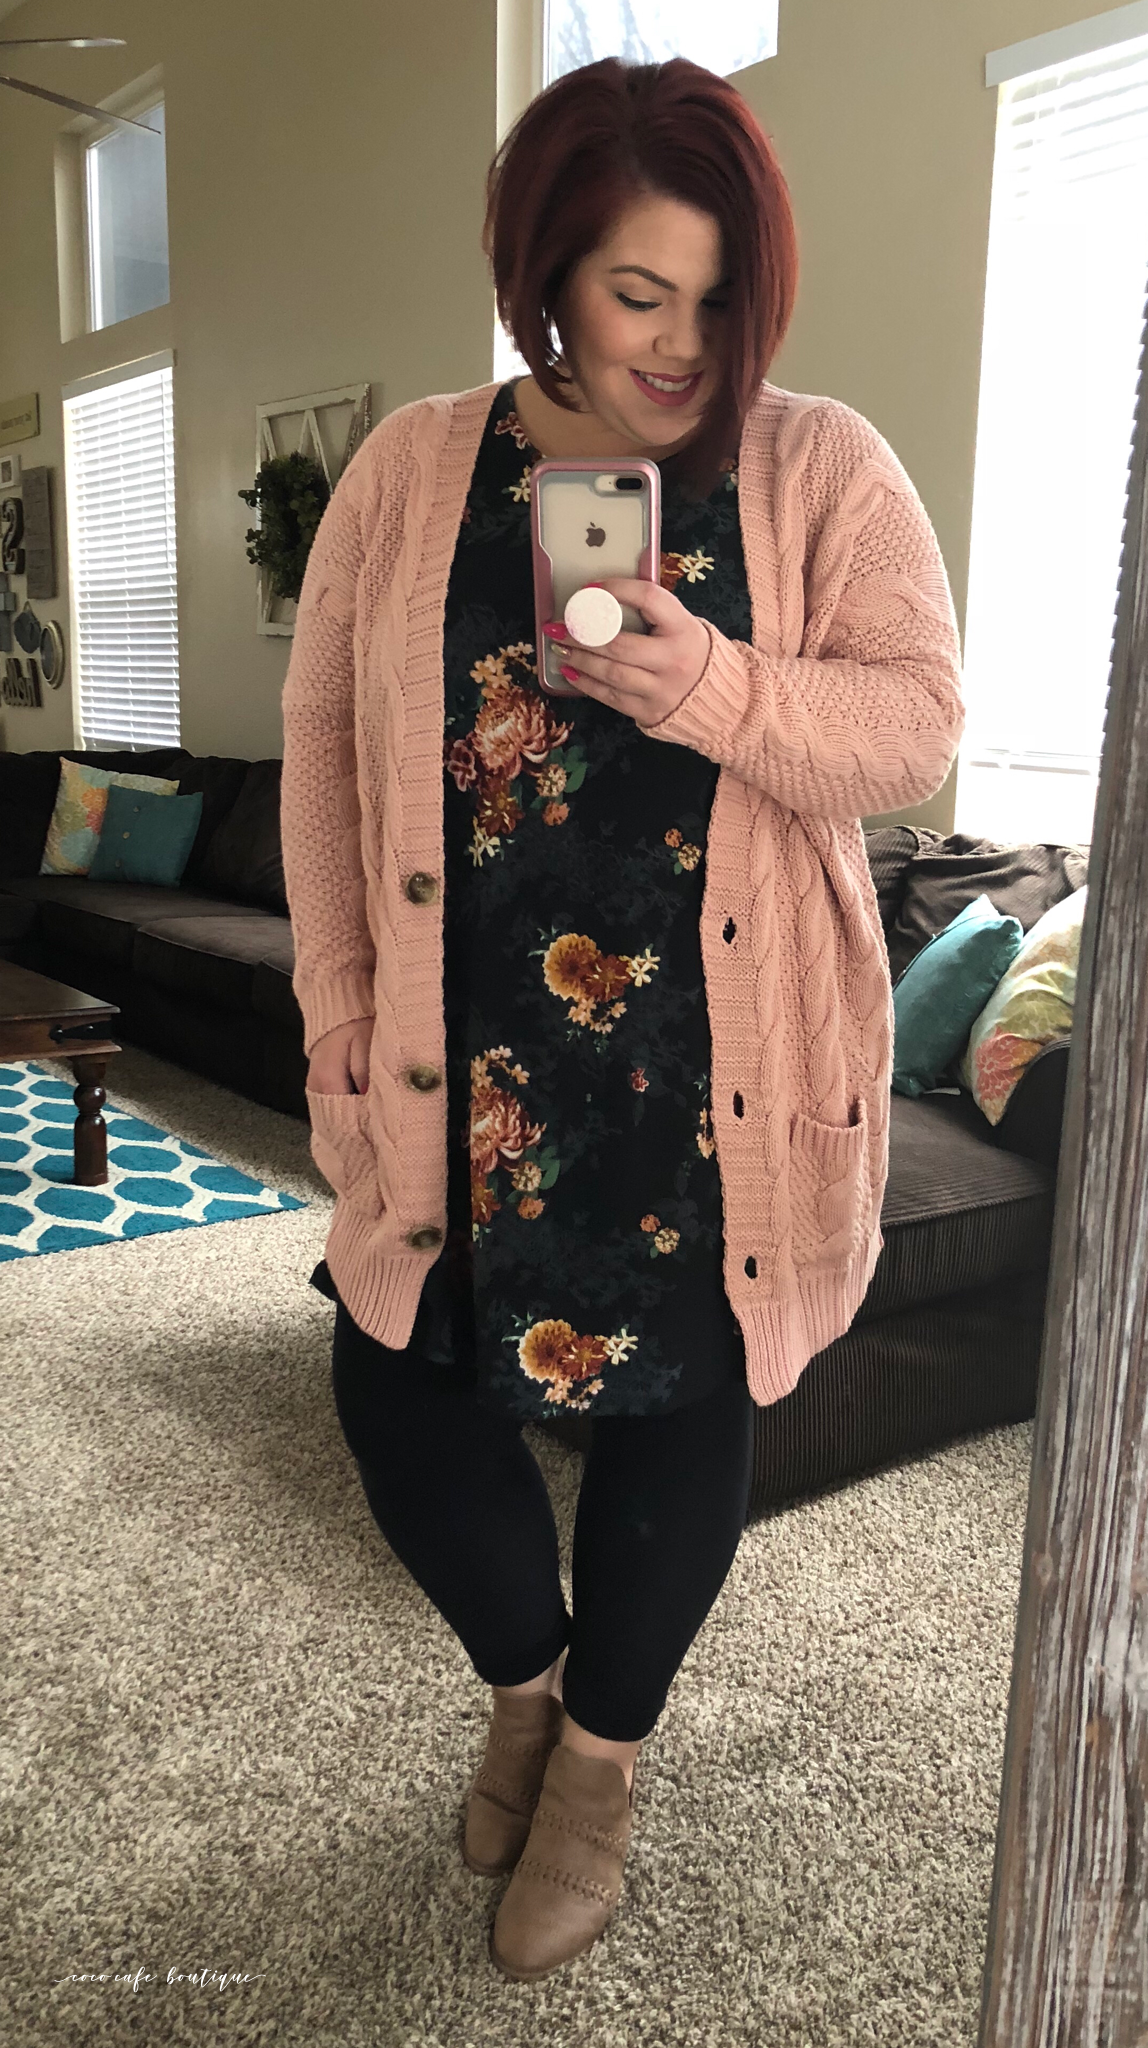 7479ab1d3f12a The Agnes and Dora Boyfriend Cardigan is life y'all! I'm digging this blush  color over the Vintage Floral Swing Tunic. #AgnesAndDora #BoyfriendCardigan  ...